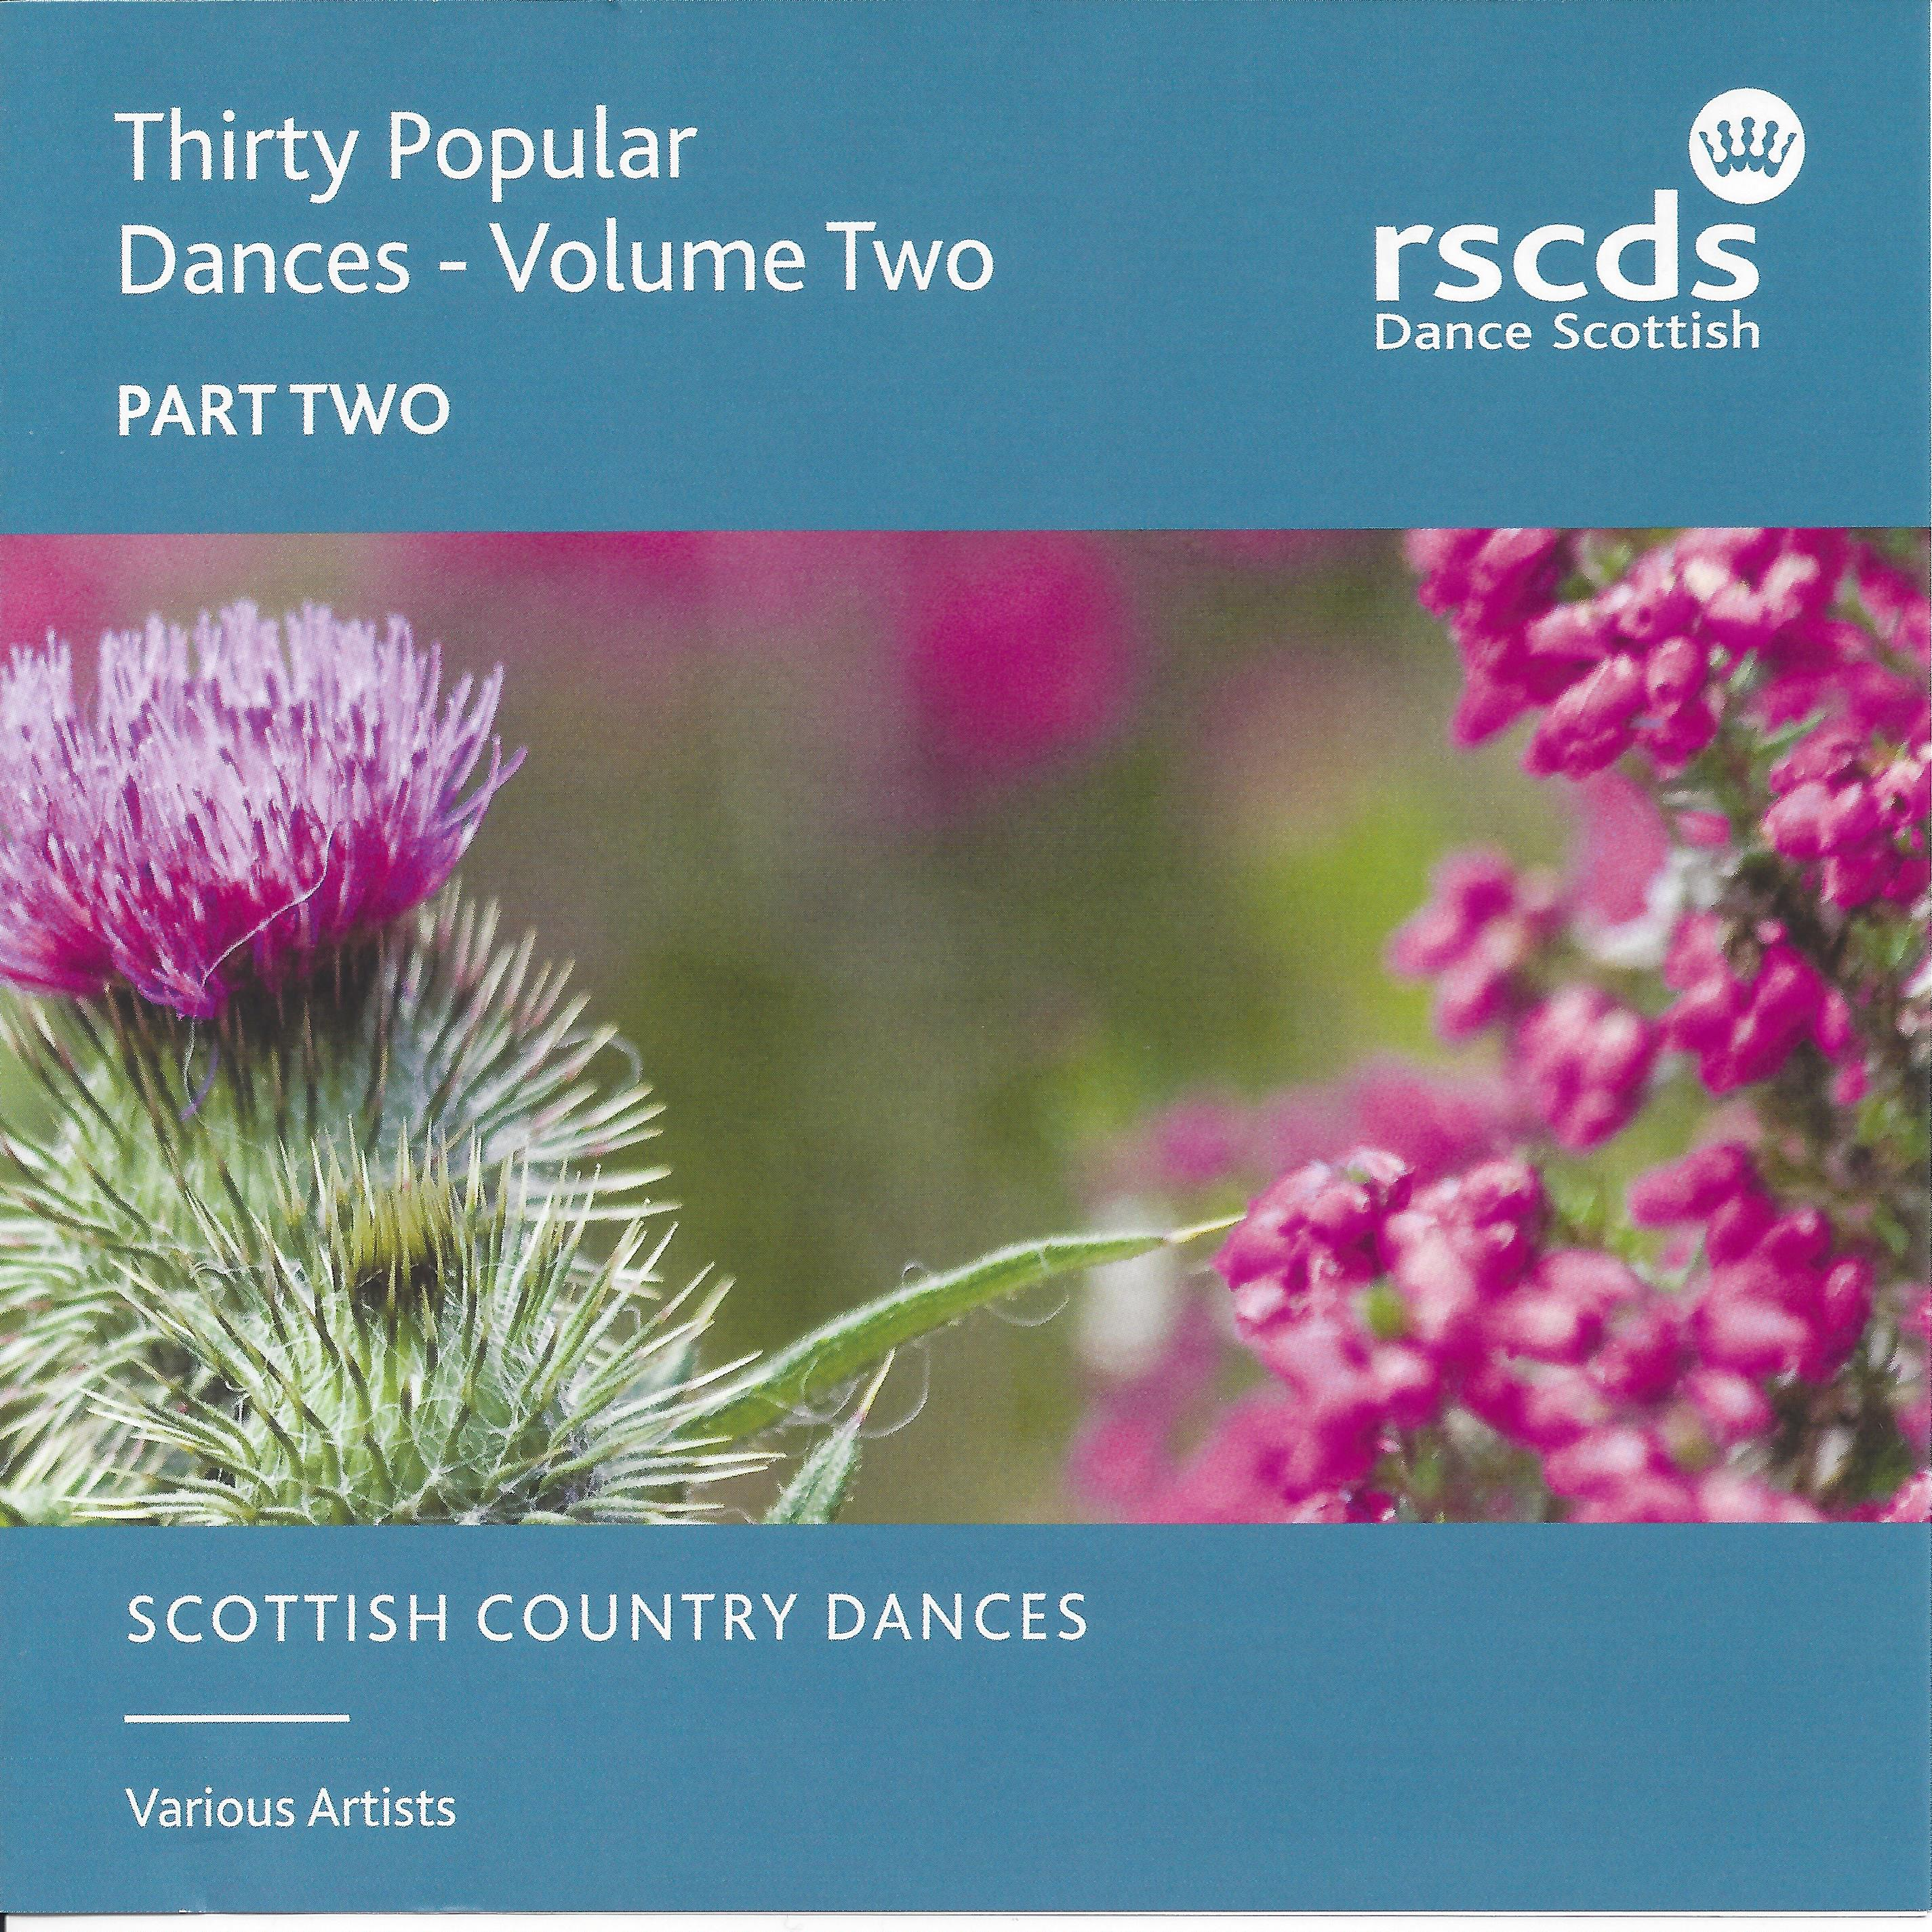 Thirty Popular Dances - Volume Two - Part Two